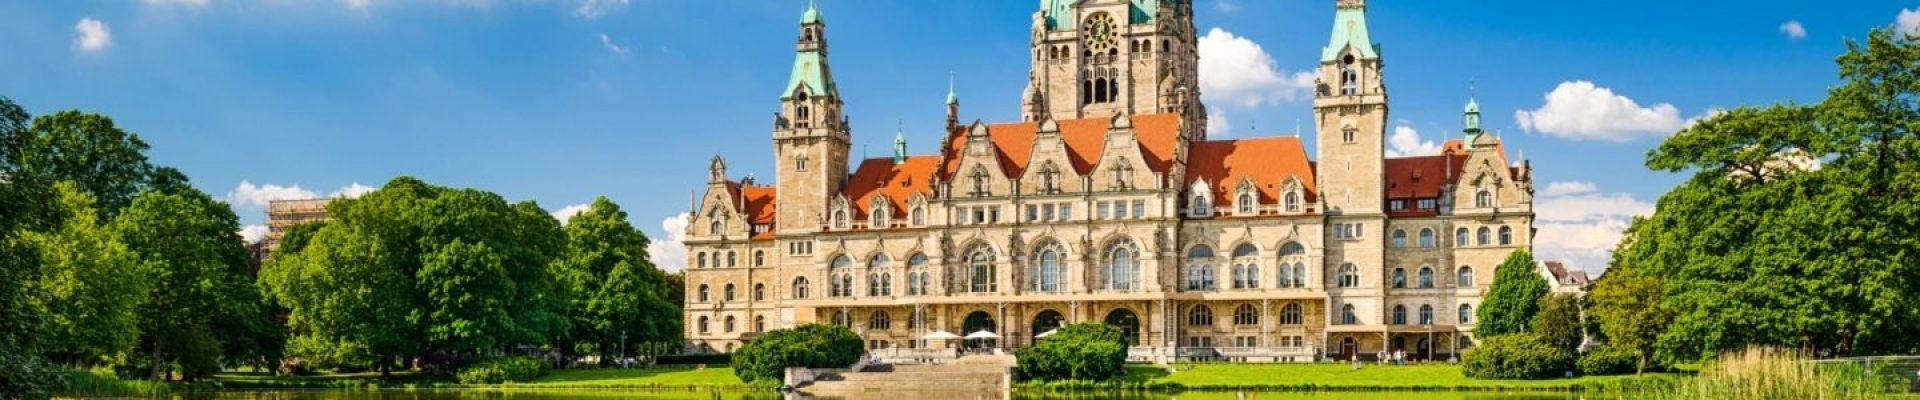 Fotolia_112789245_hannover-1